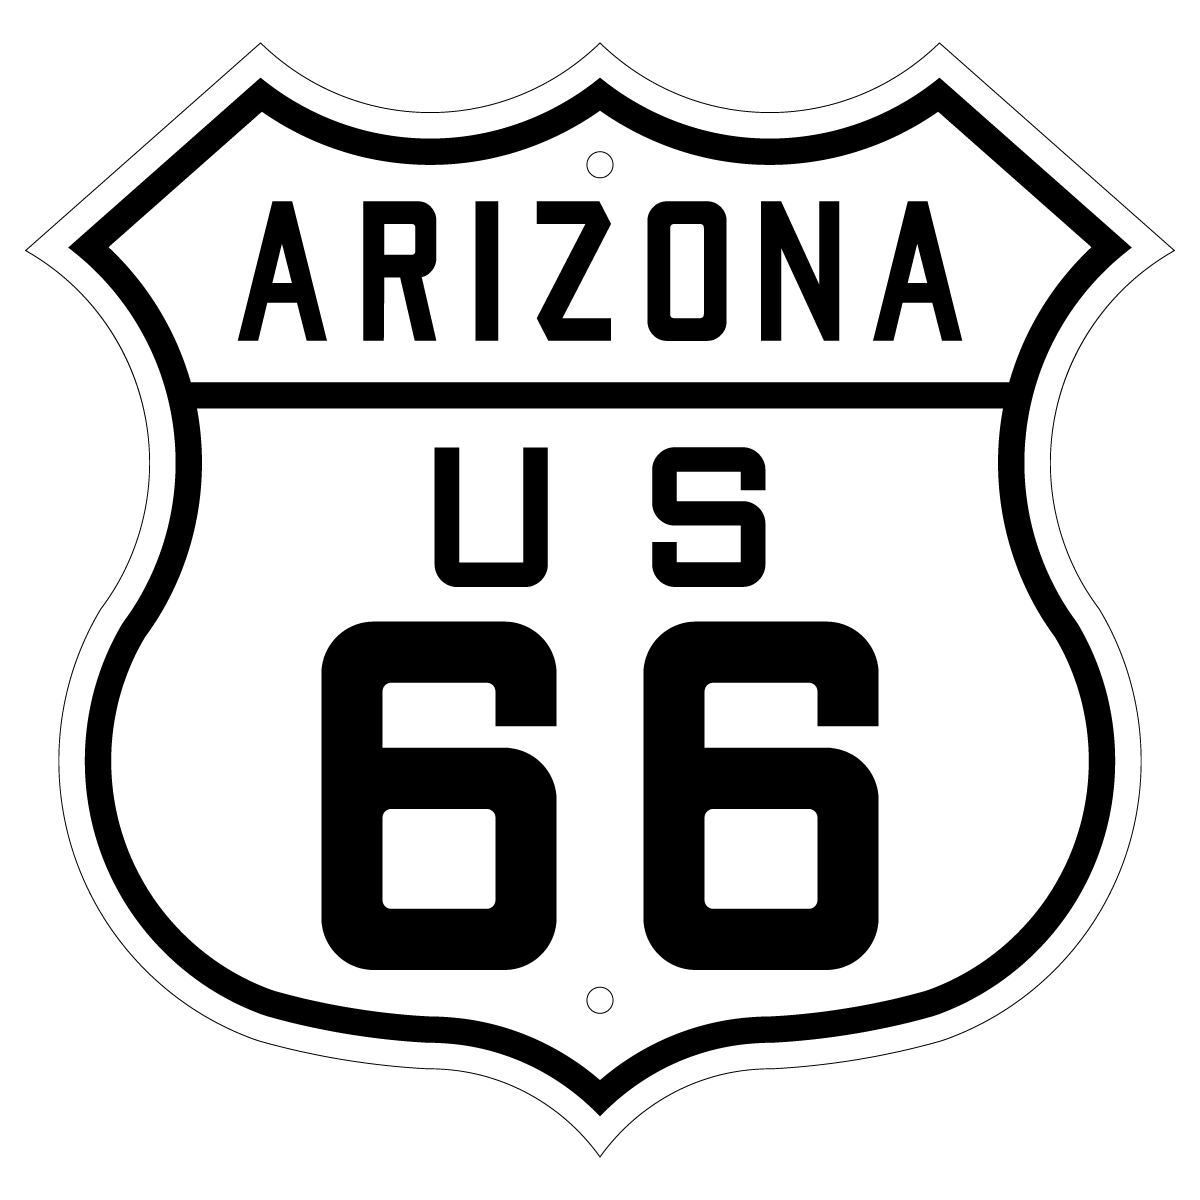 The best free Arizona vector images. Download from 120